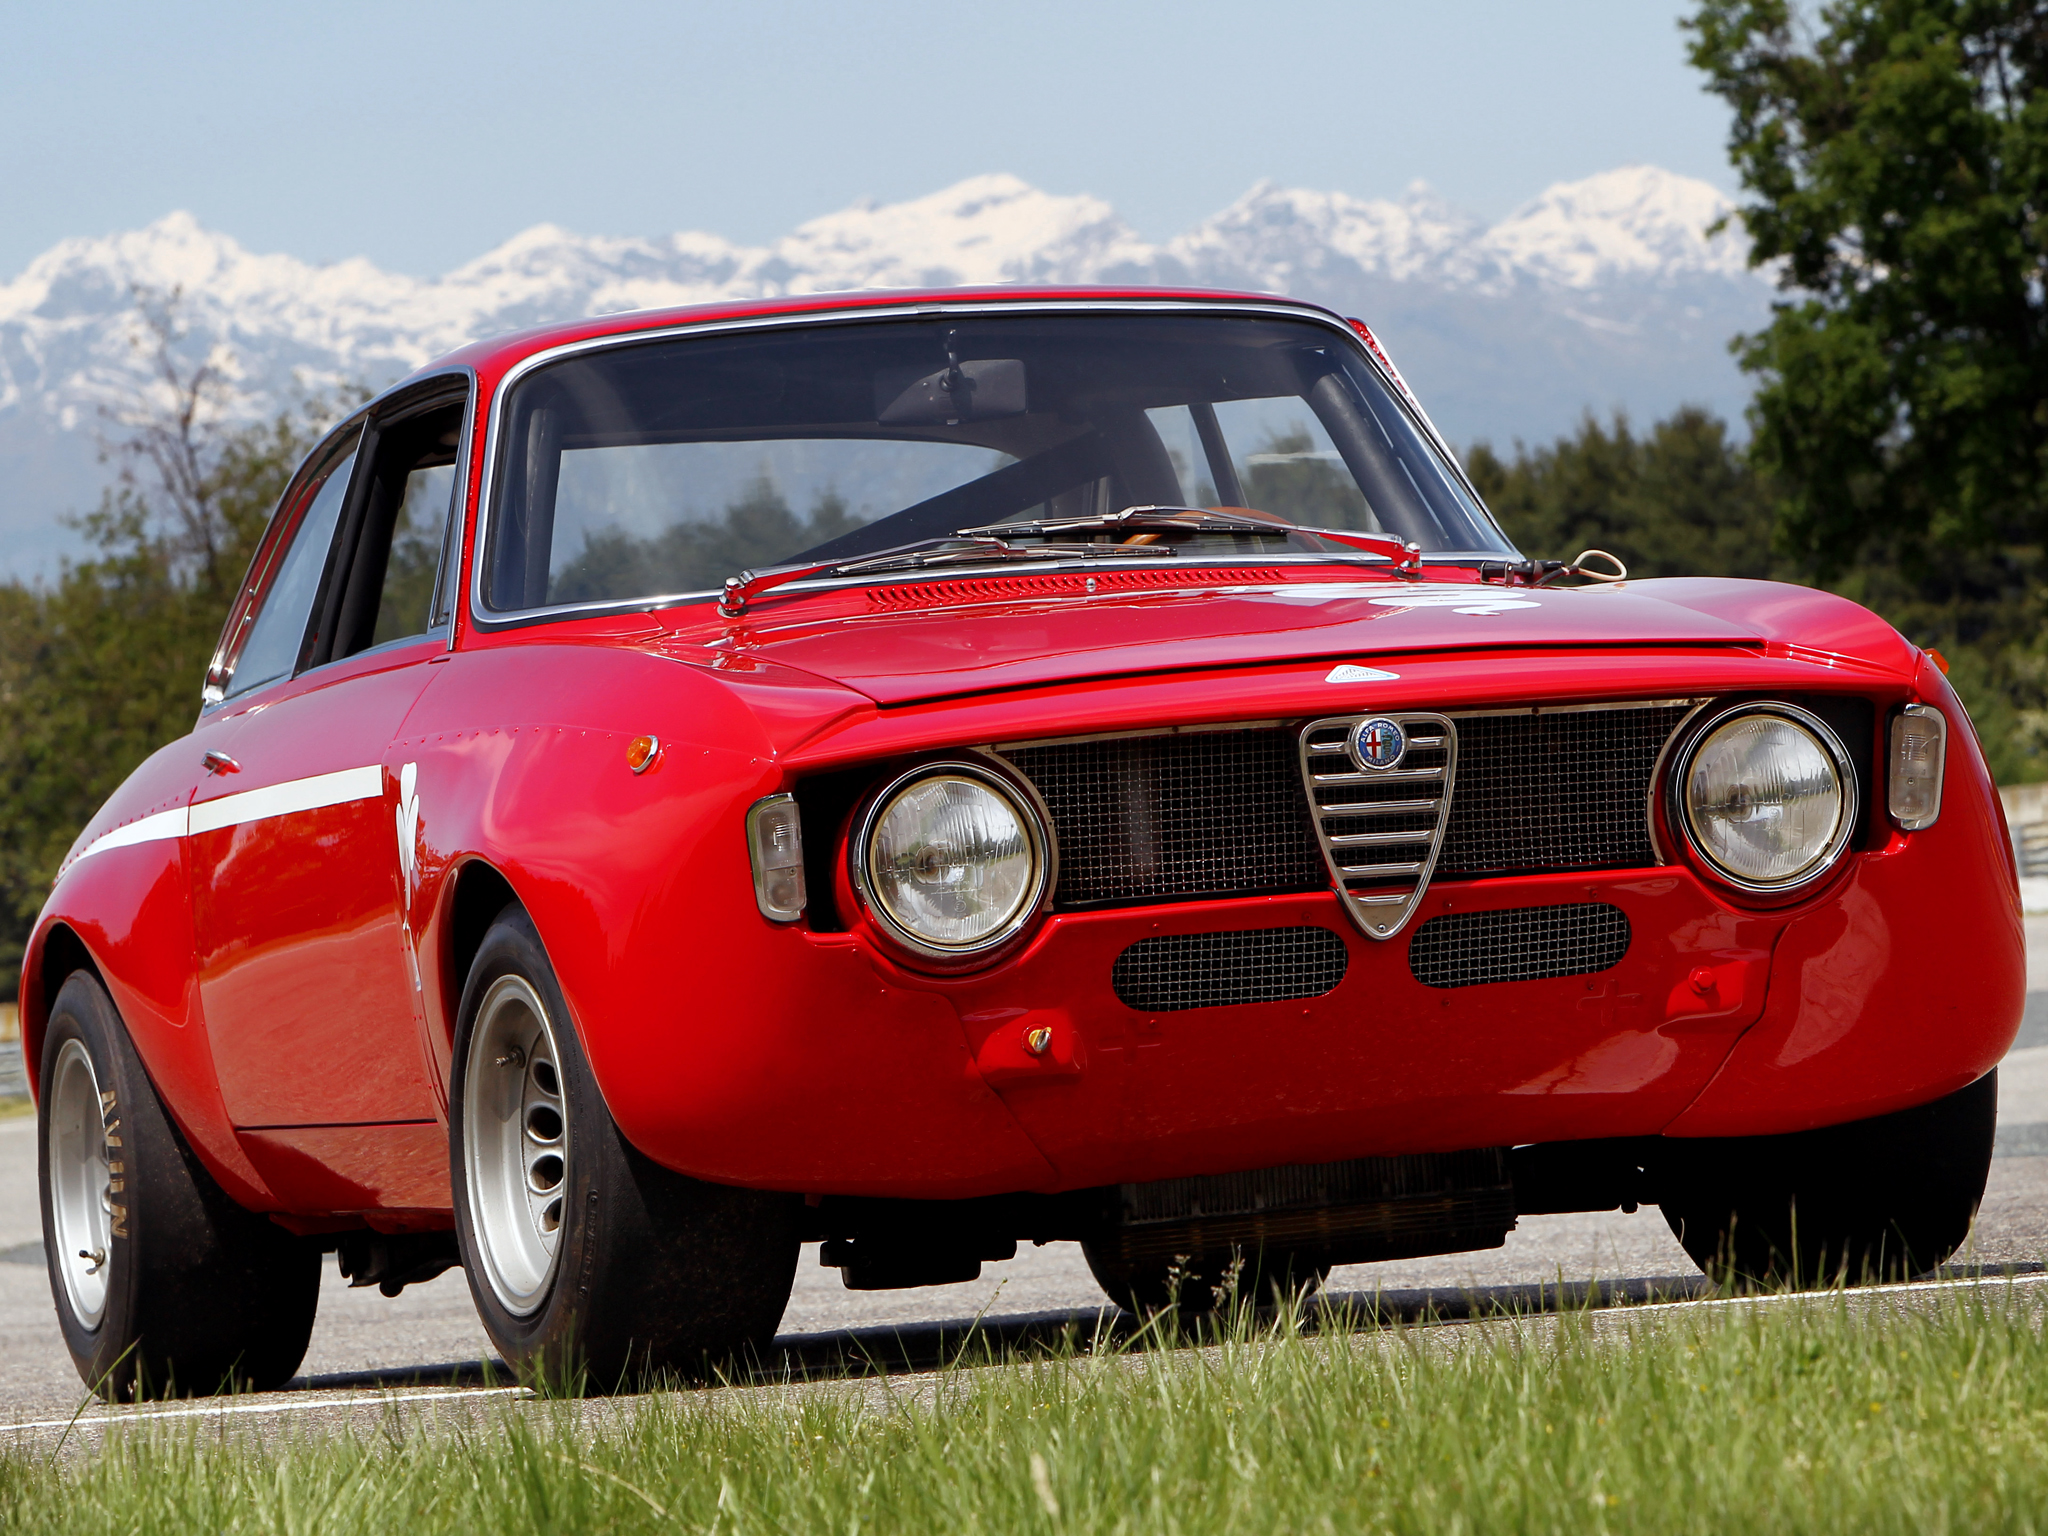 Alfa romeo gta photo - 2